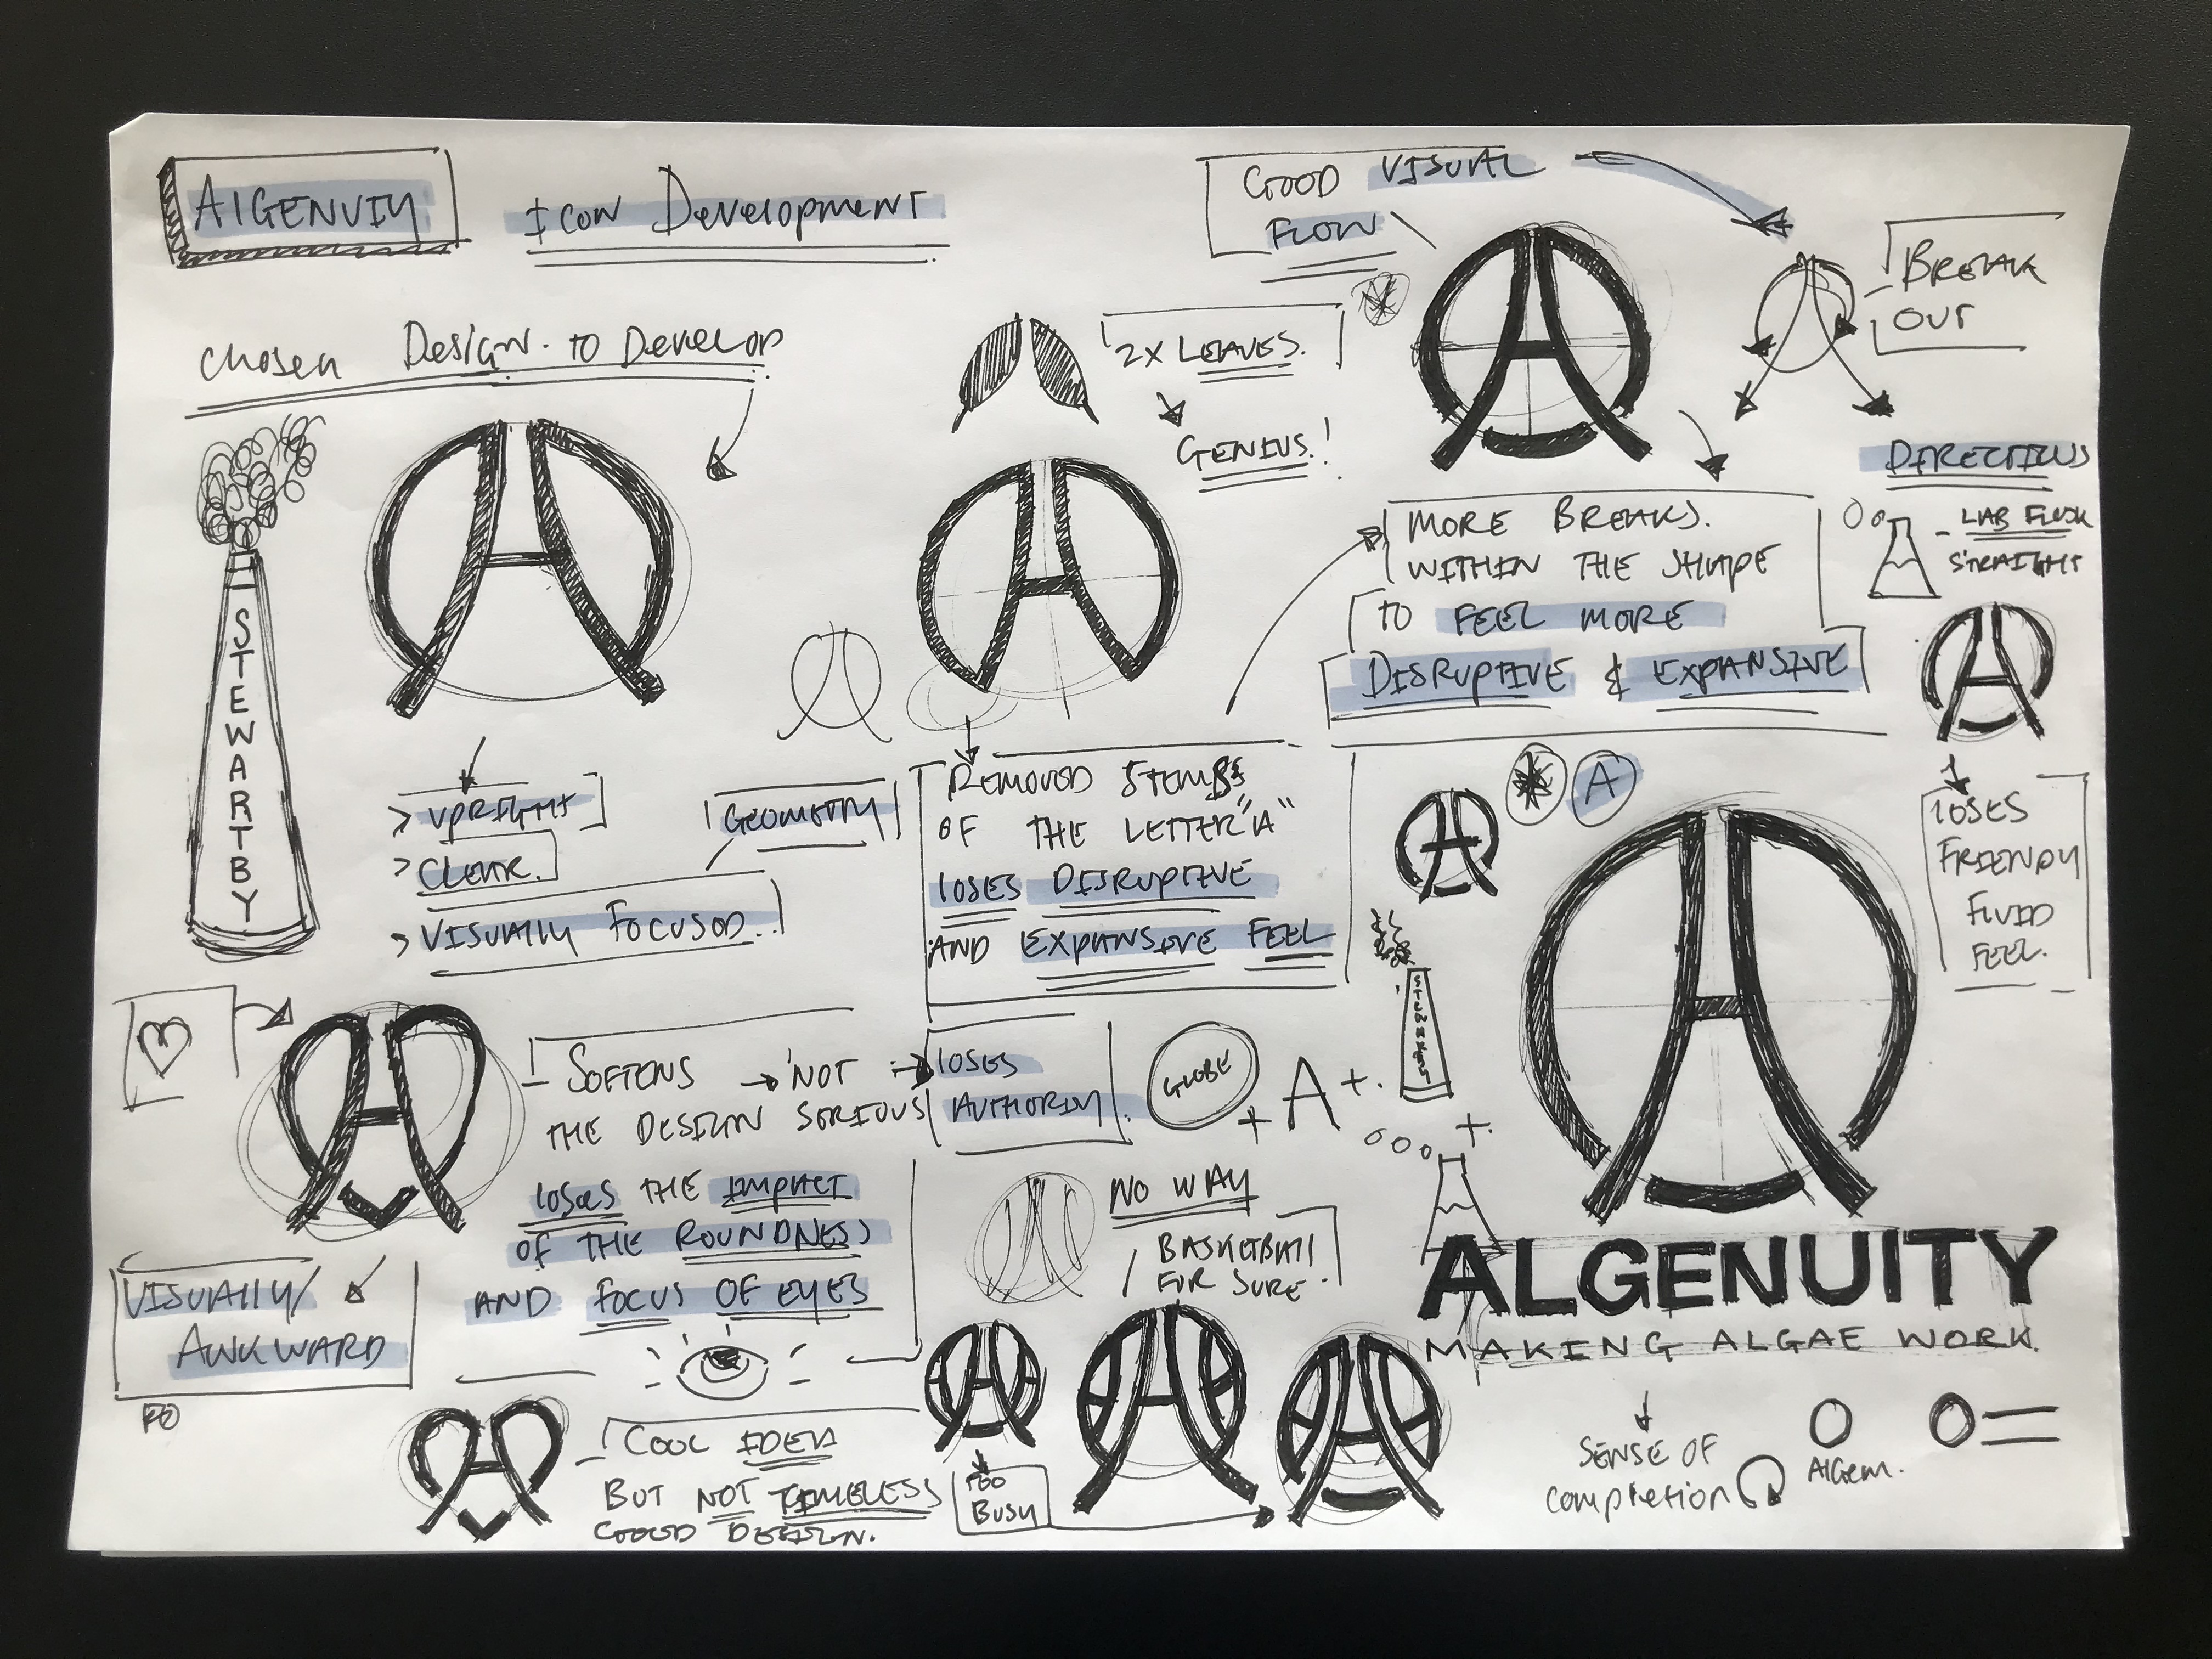 logomark development for biotech company Algenuity